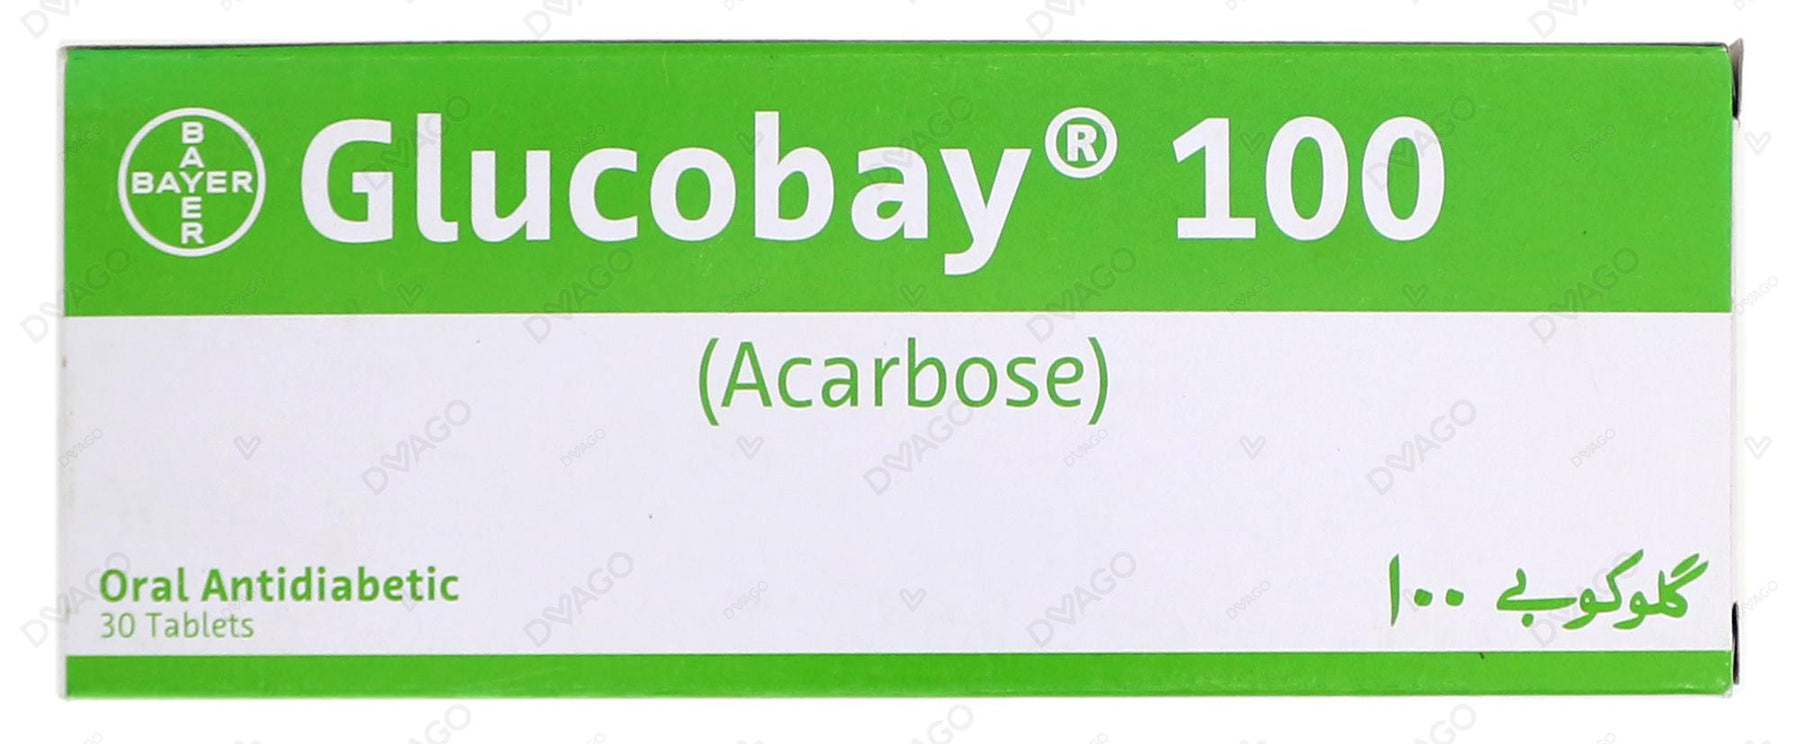 Glucobay Tablets 100mg 3X10's